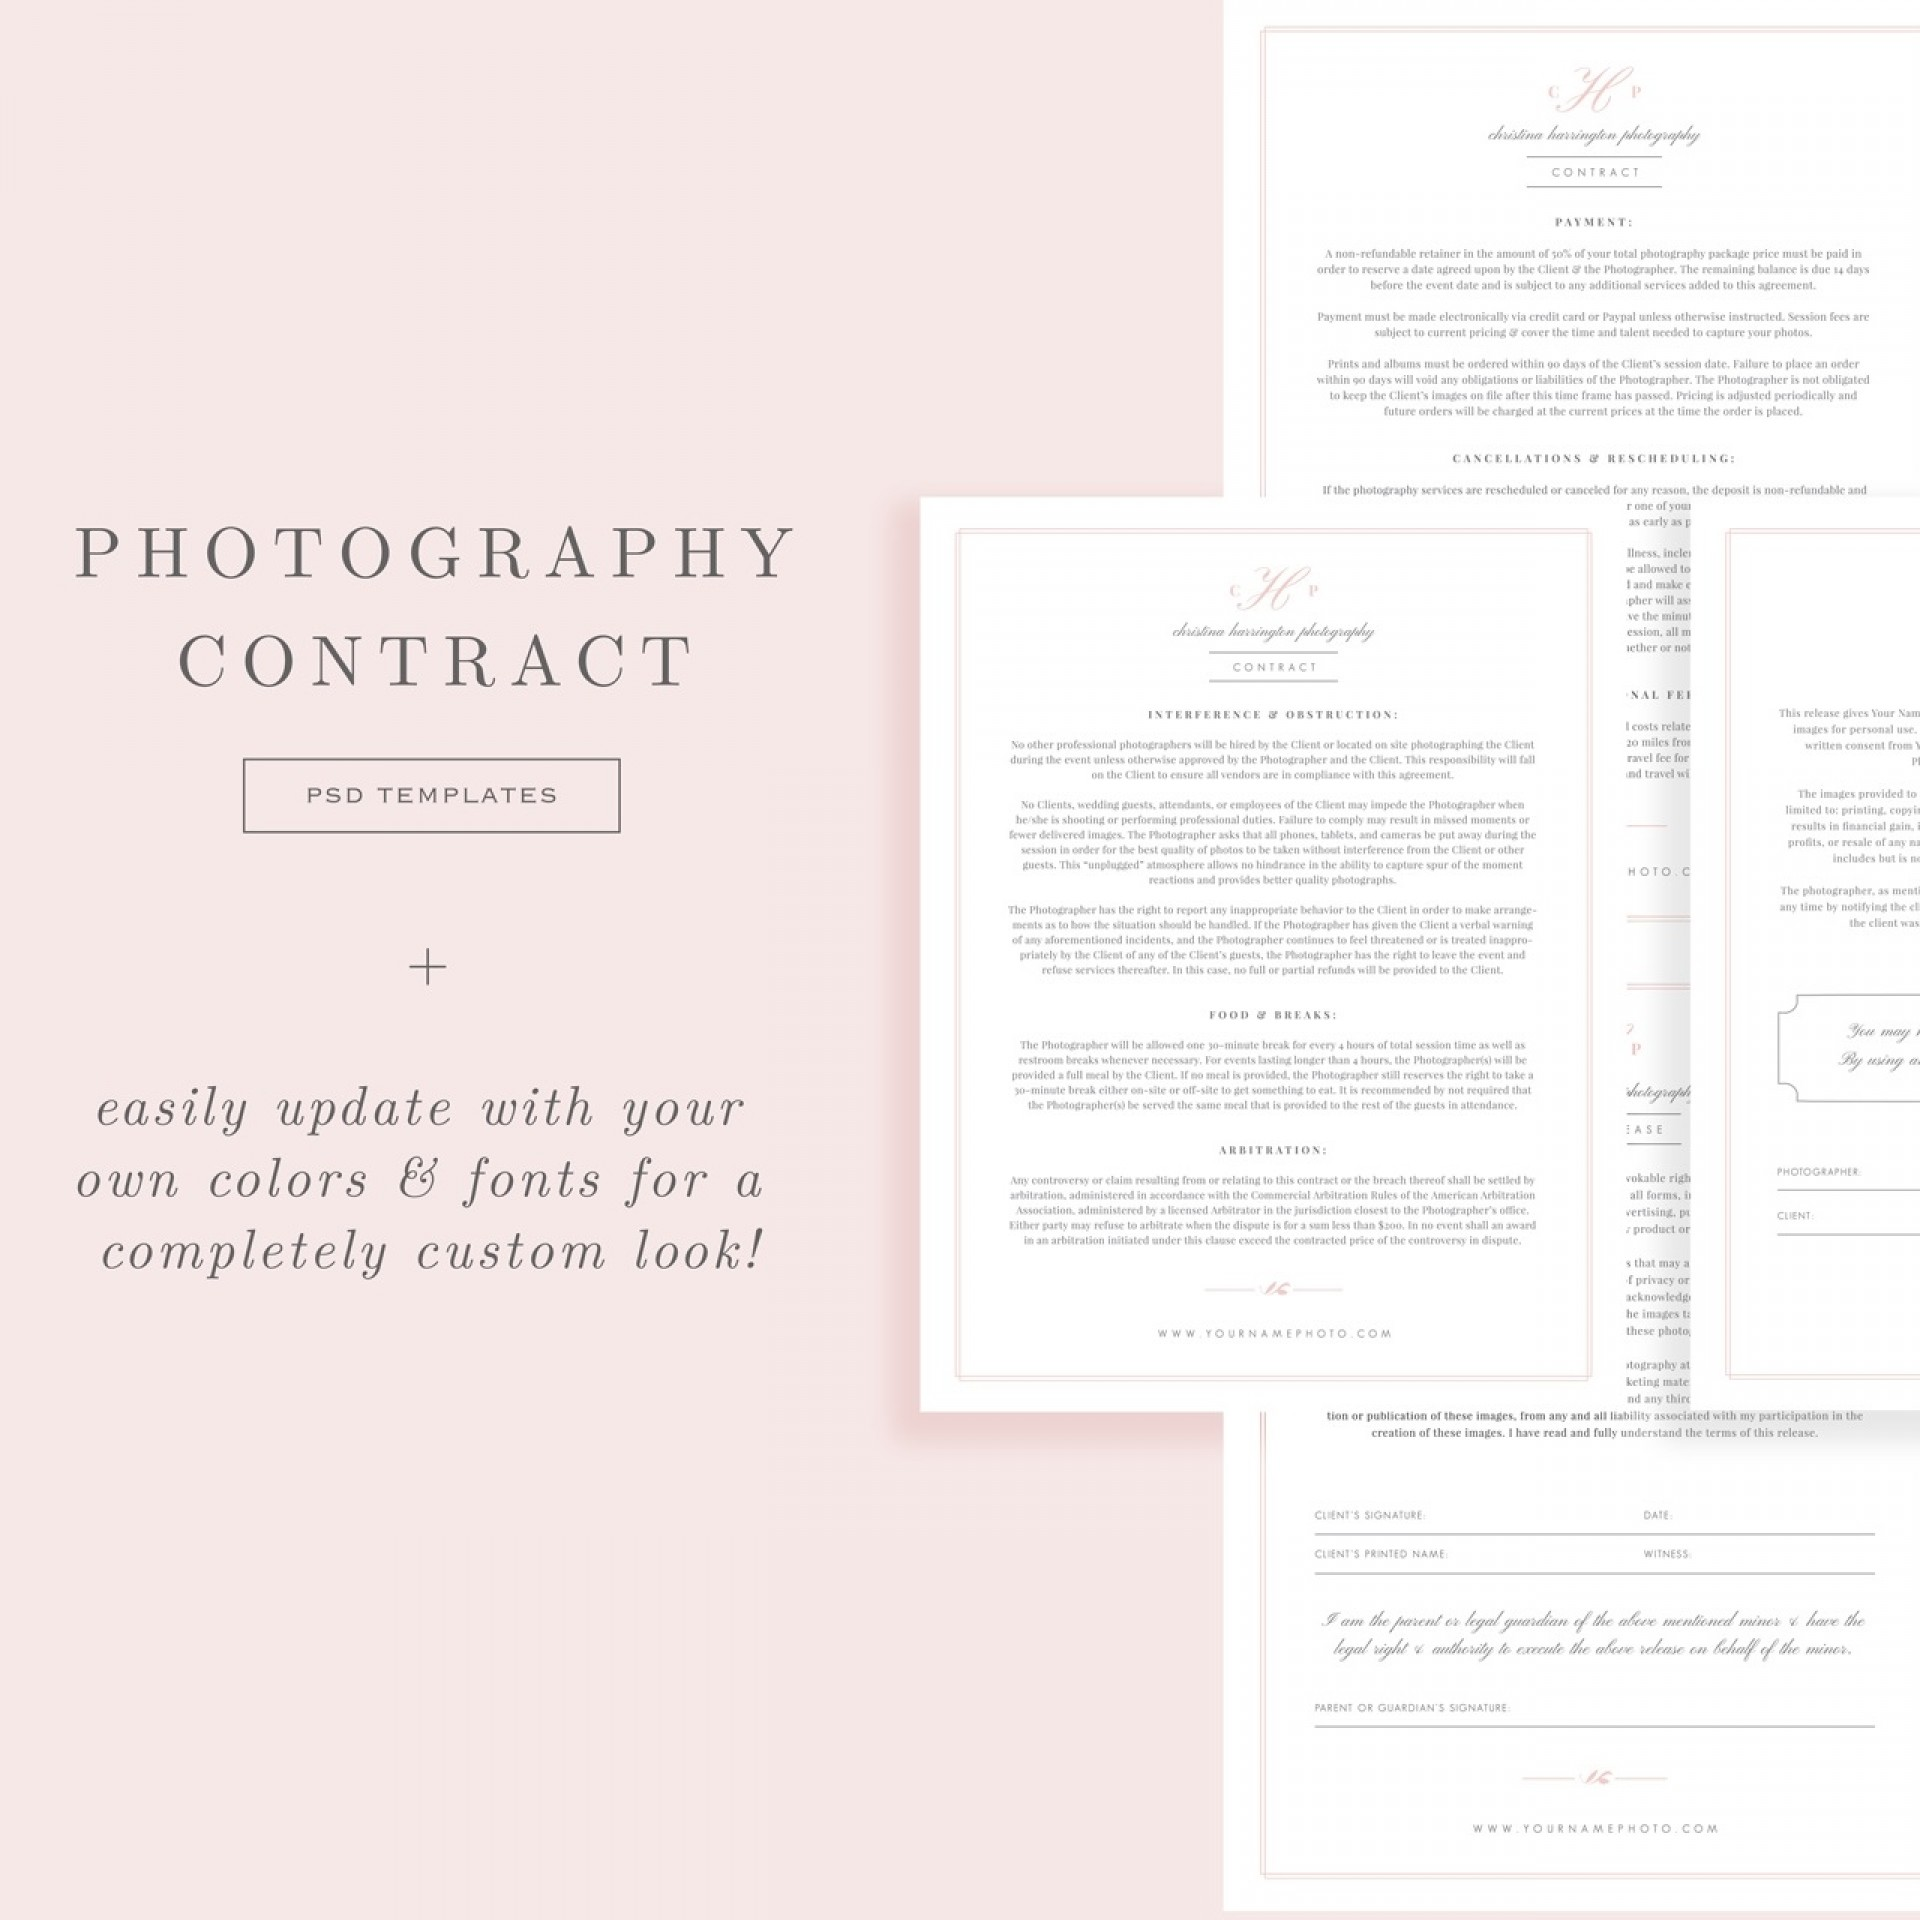 007 Fearsome Wedding Photographer Contract Template Photo  Free Photography Uk1920